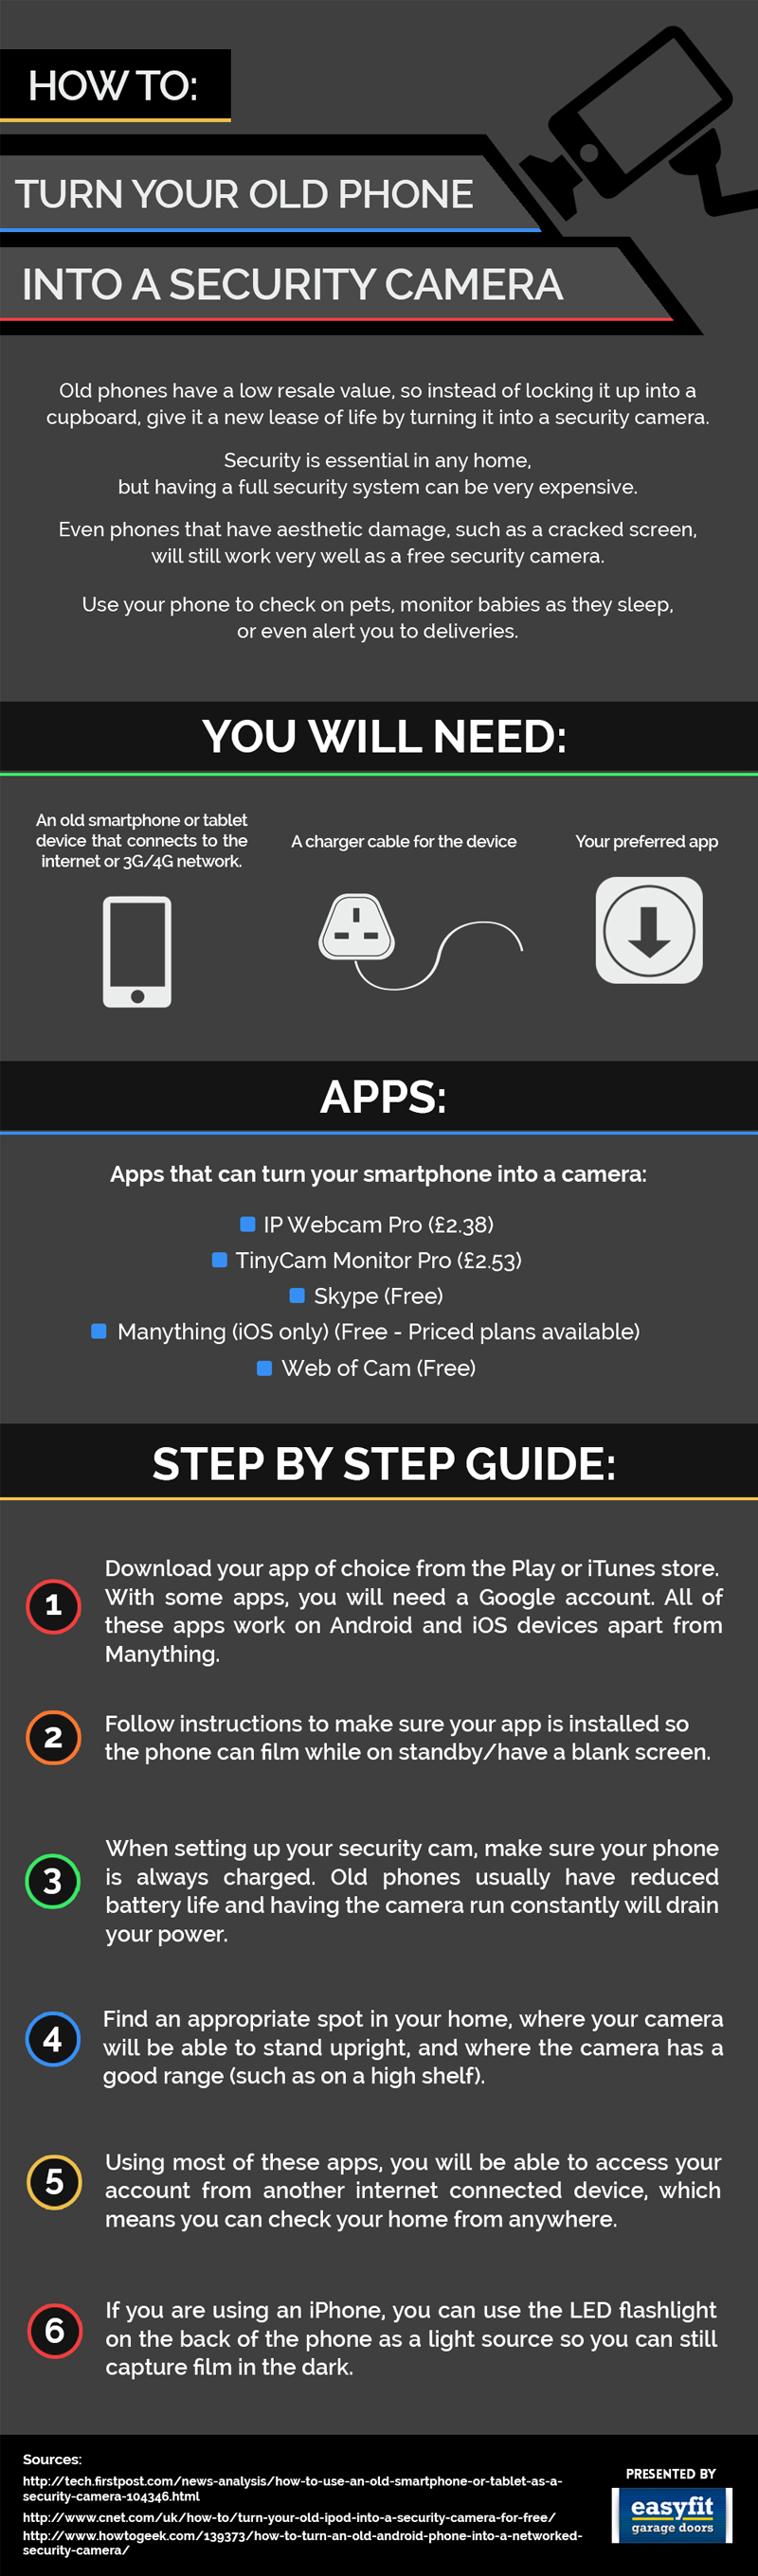 How to Turn Your Phone into a Security Camera (Infographic)